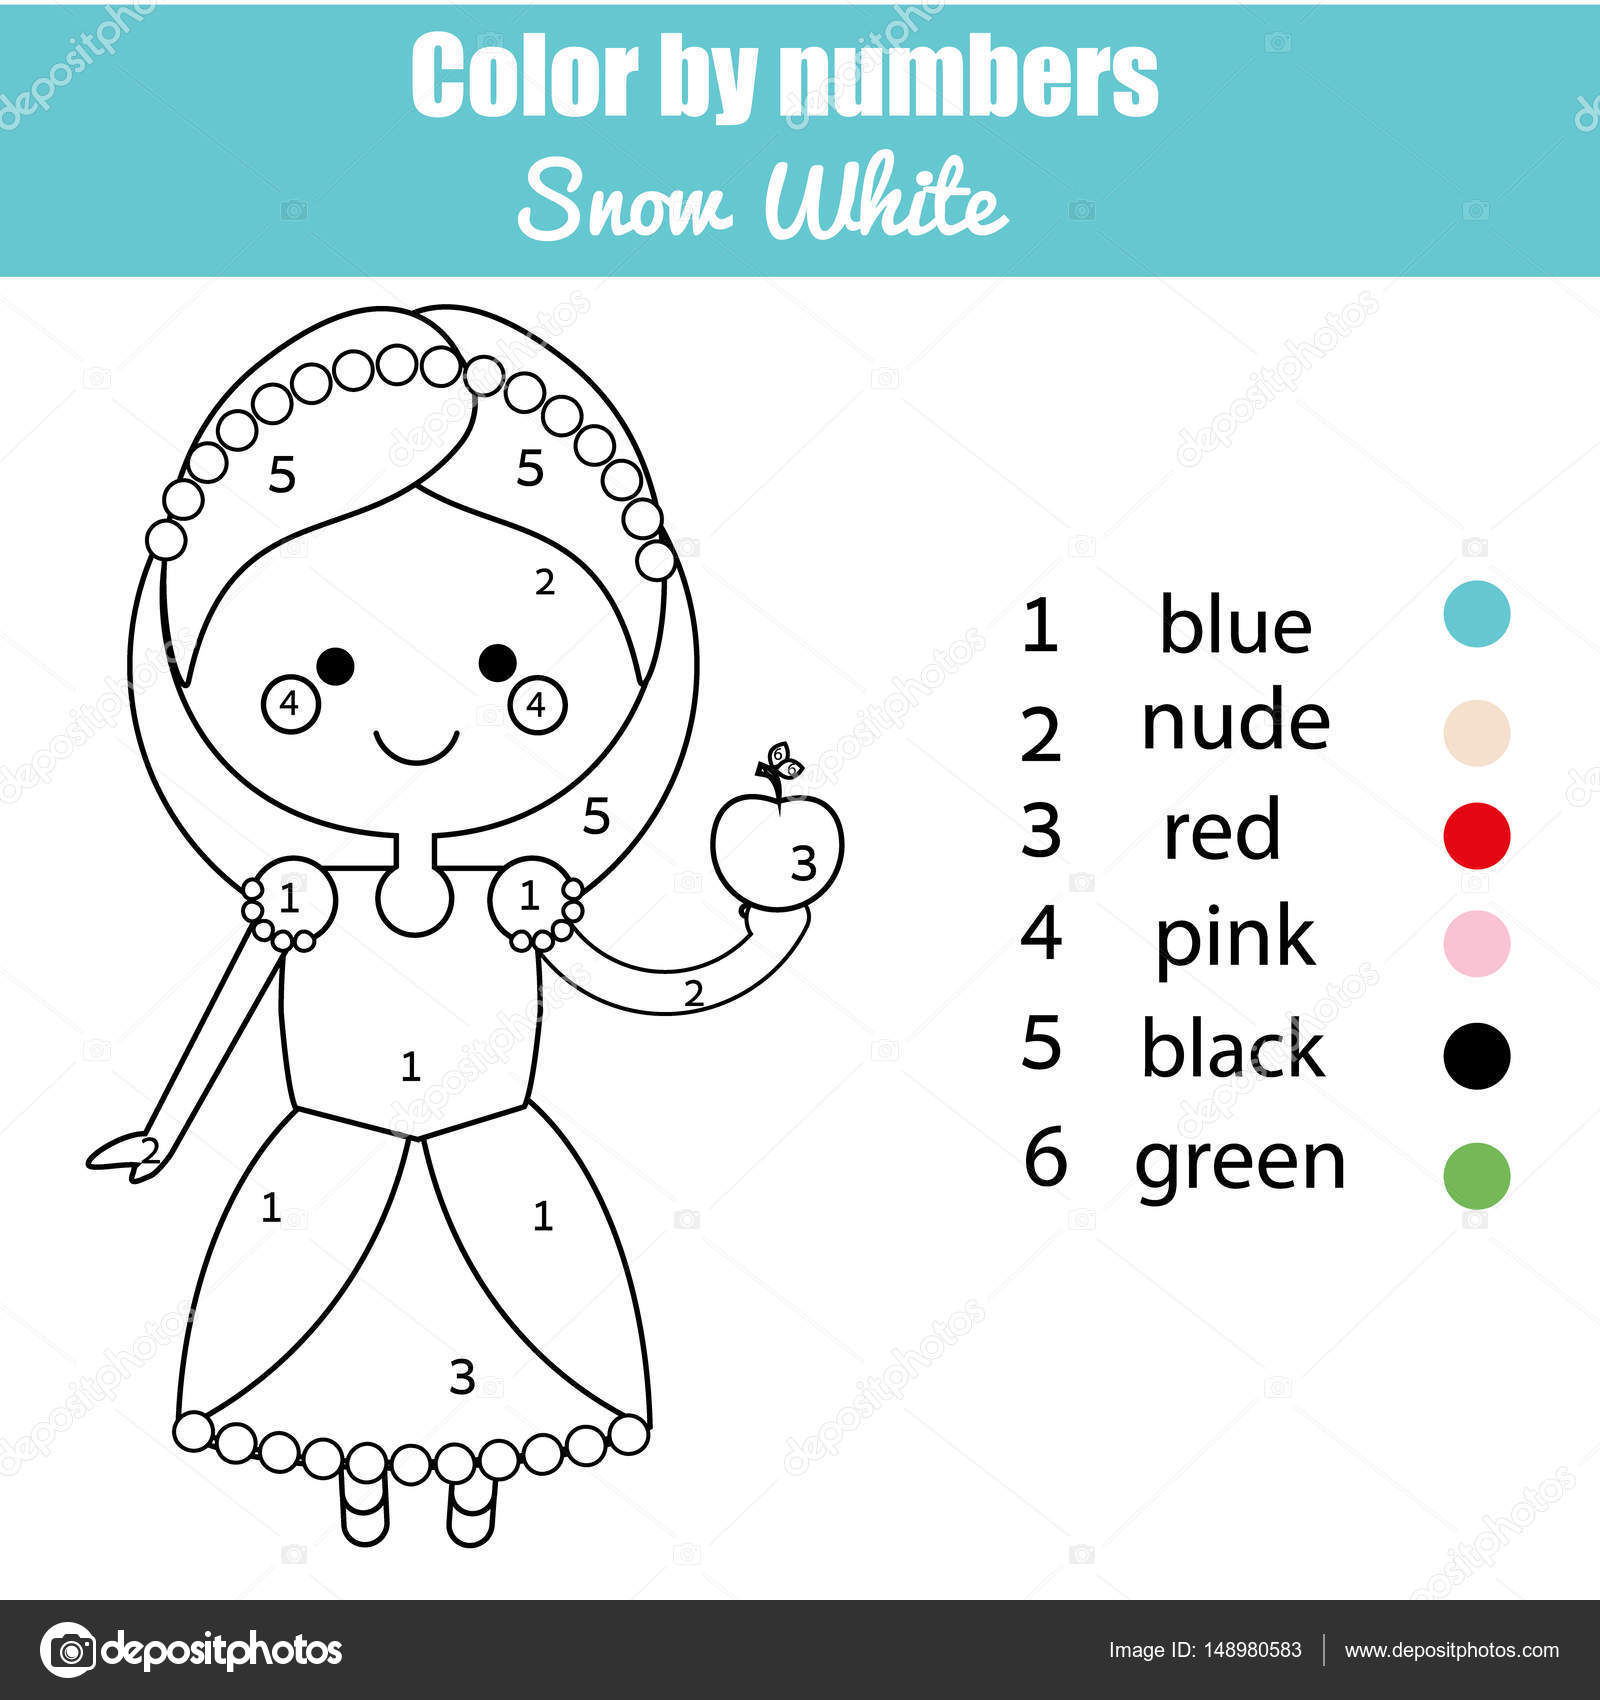 Coloring Page With Cute Snow White Fairy Tale Princess Character Color By Numbers Educational Children Game Drawing Kids Activity Printable Sheet